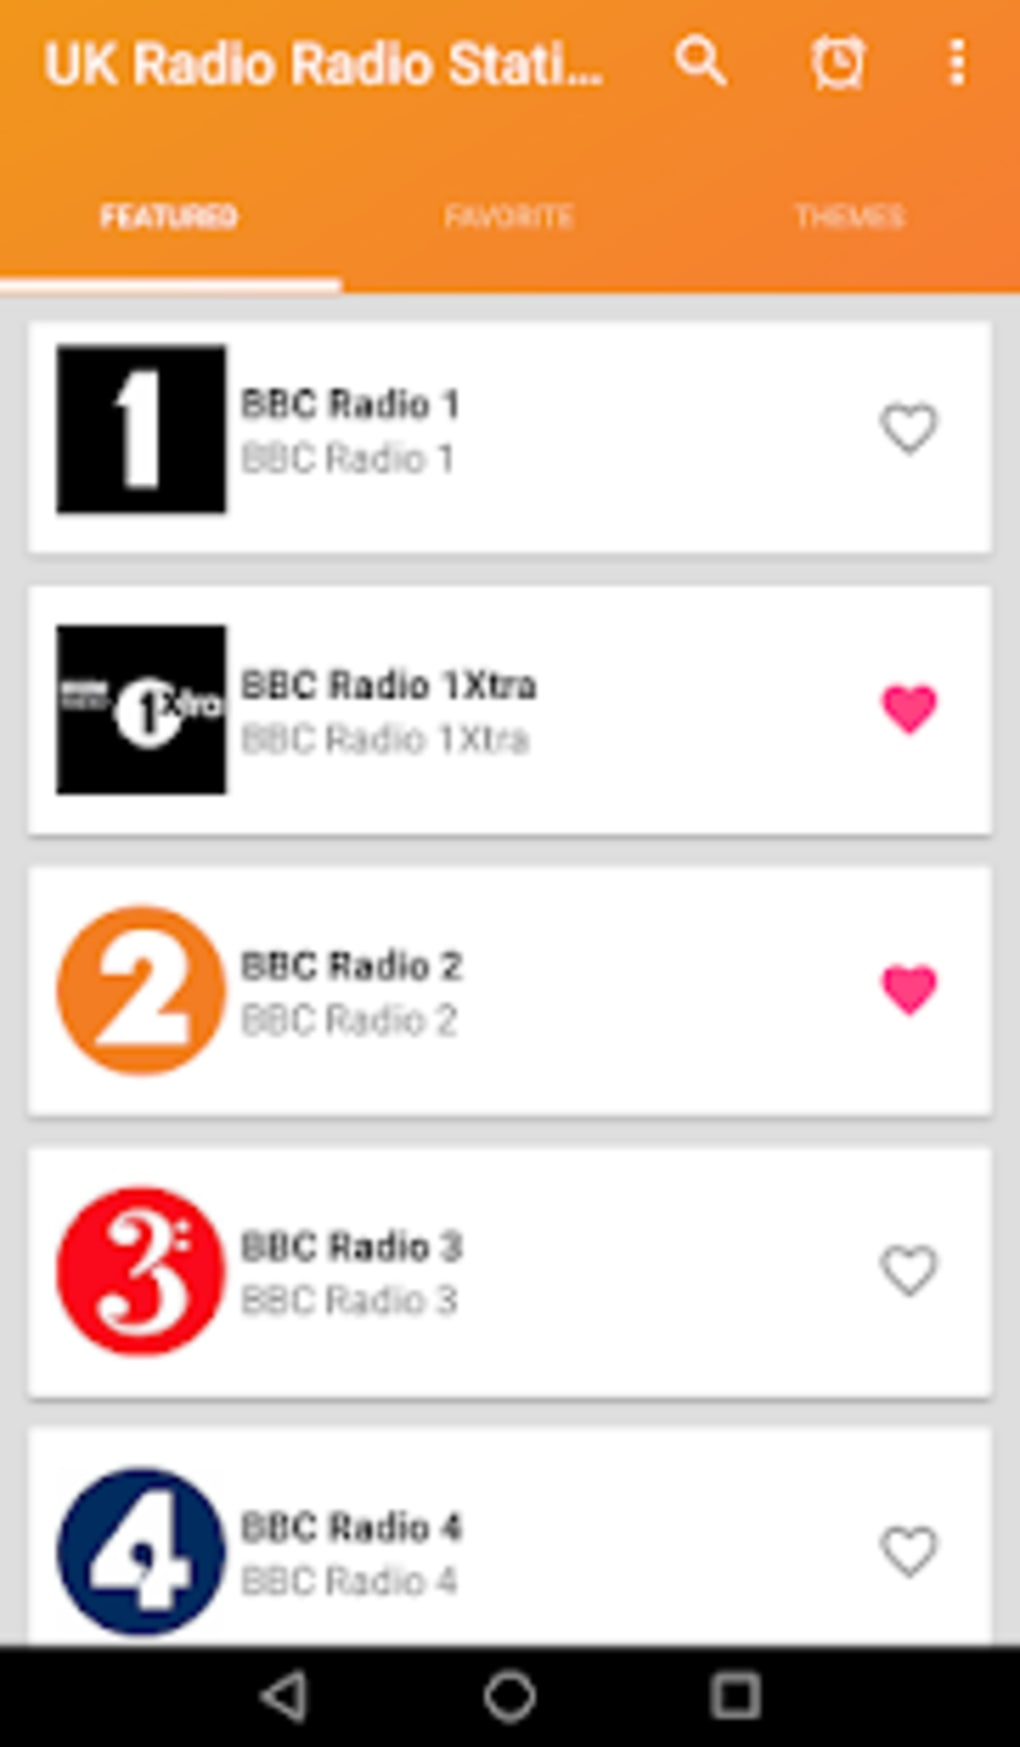 UK Radio - Internet Radio UK for Android - Download